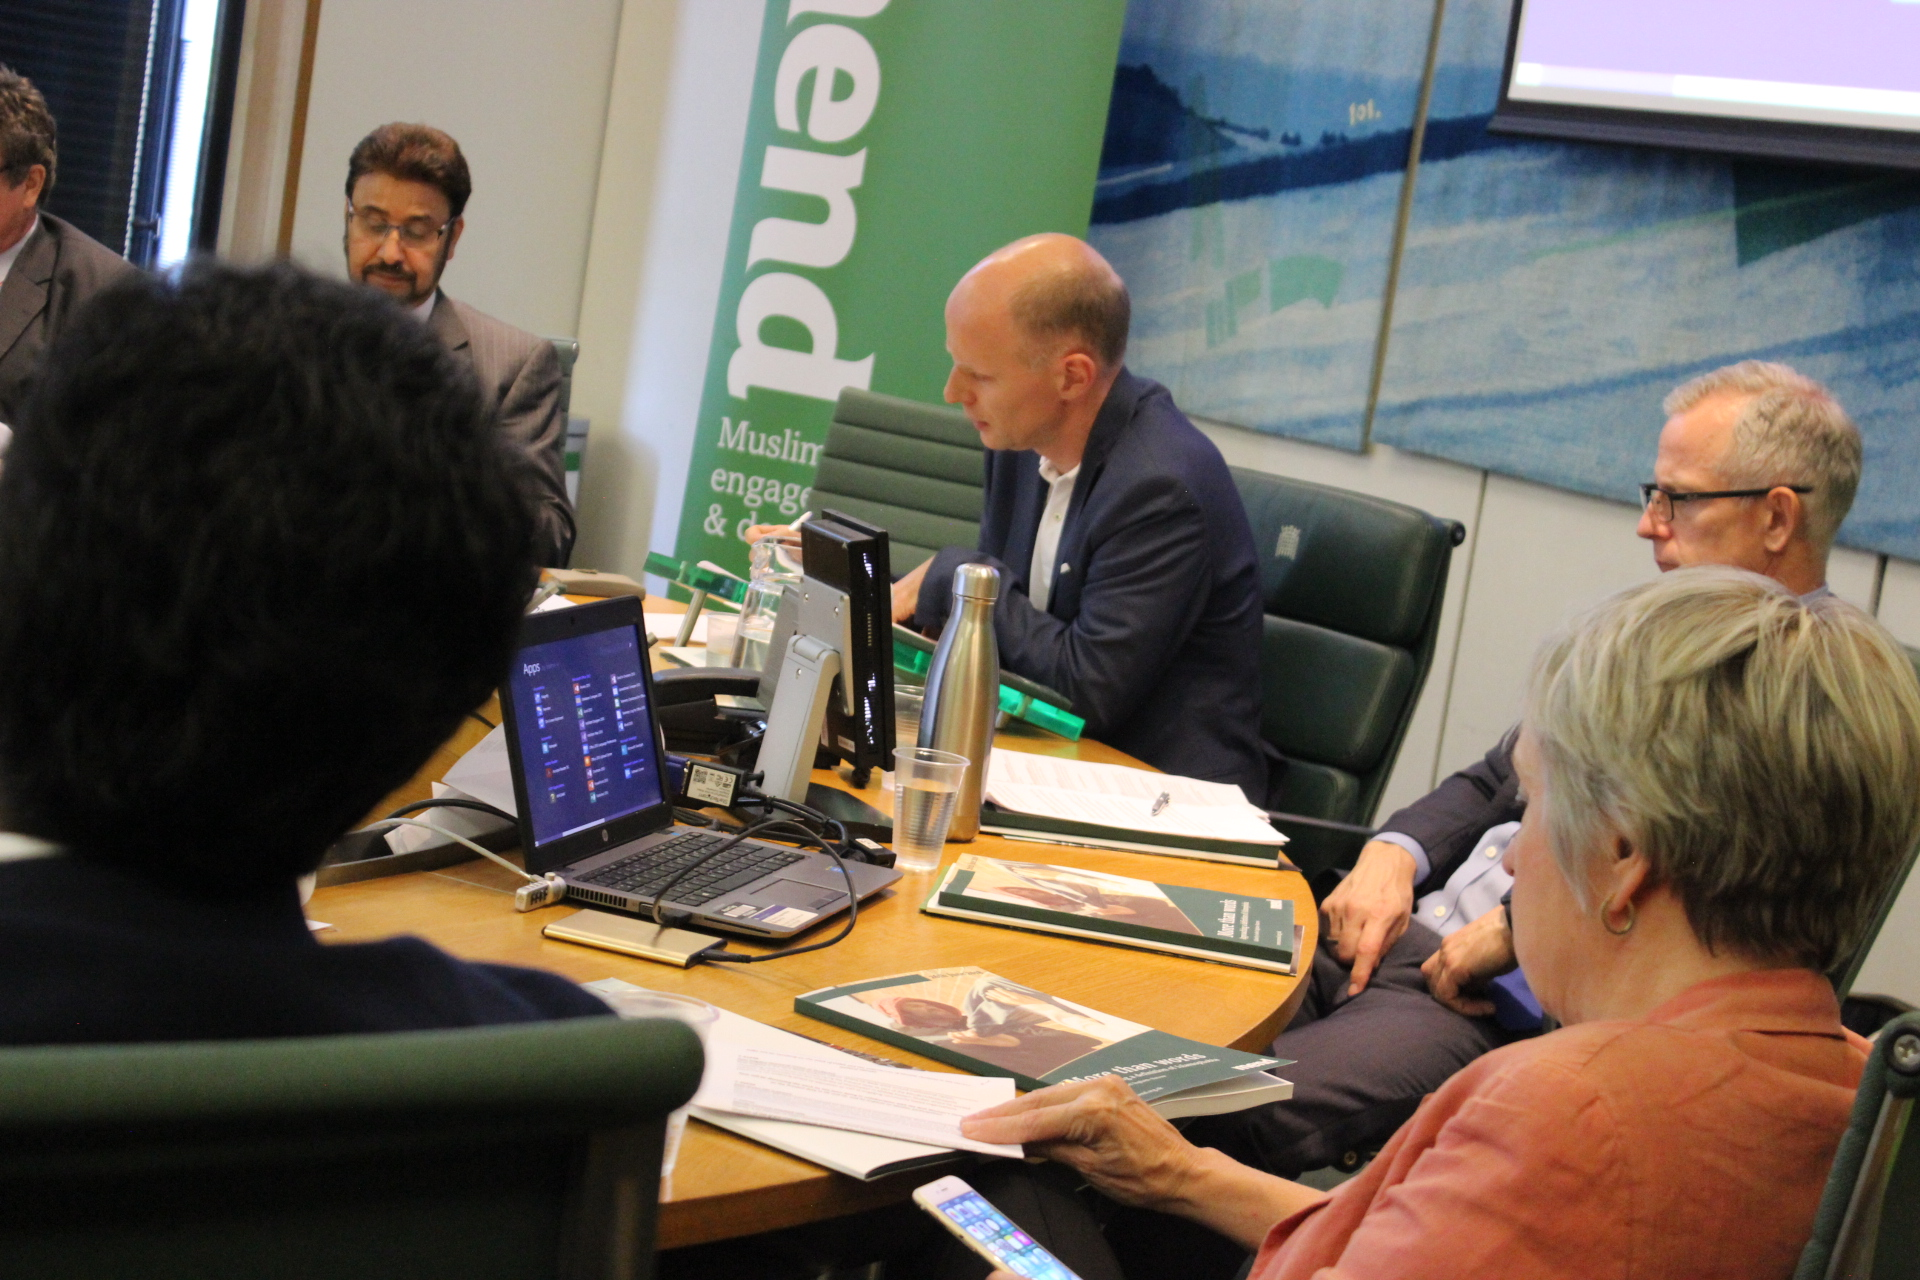 Parliamentarians celebrate launch of report exploring and defining Islamophobia.